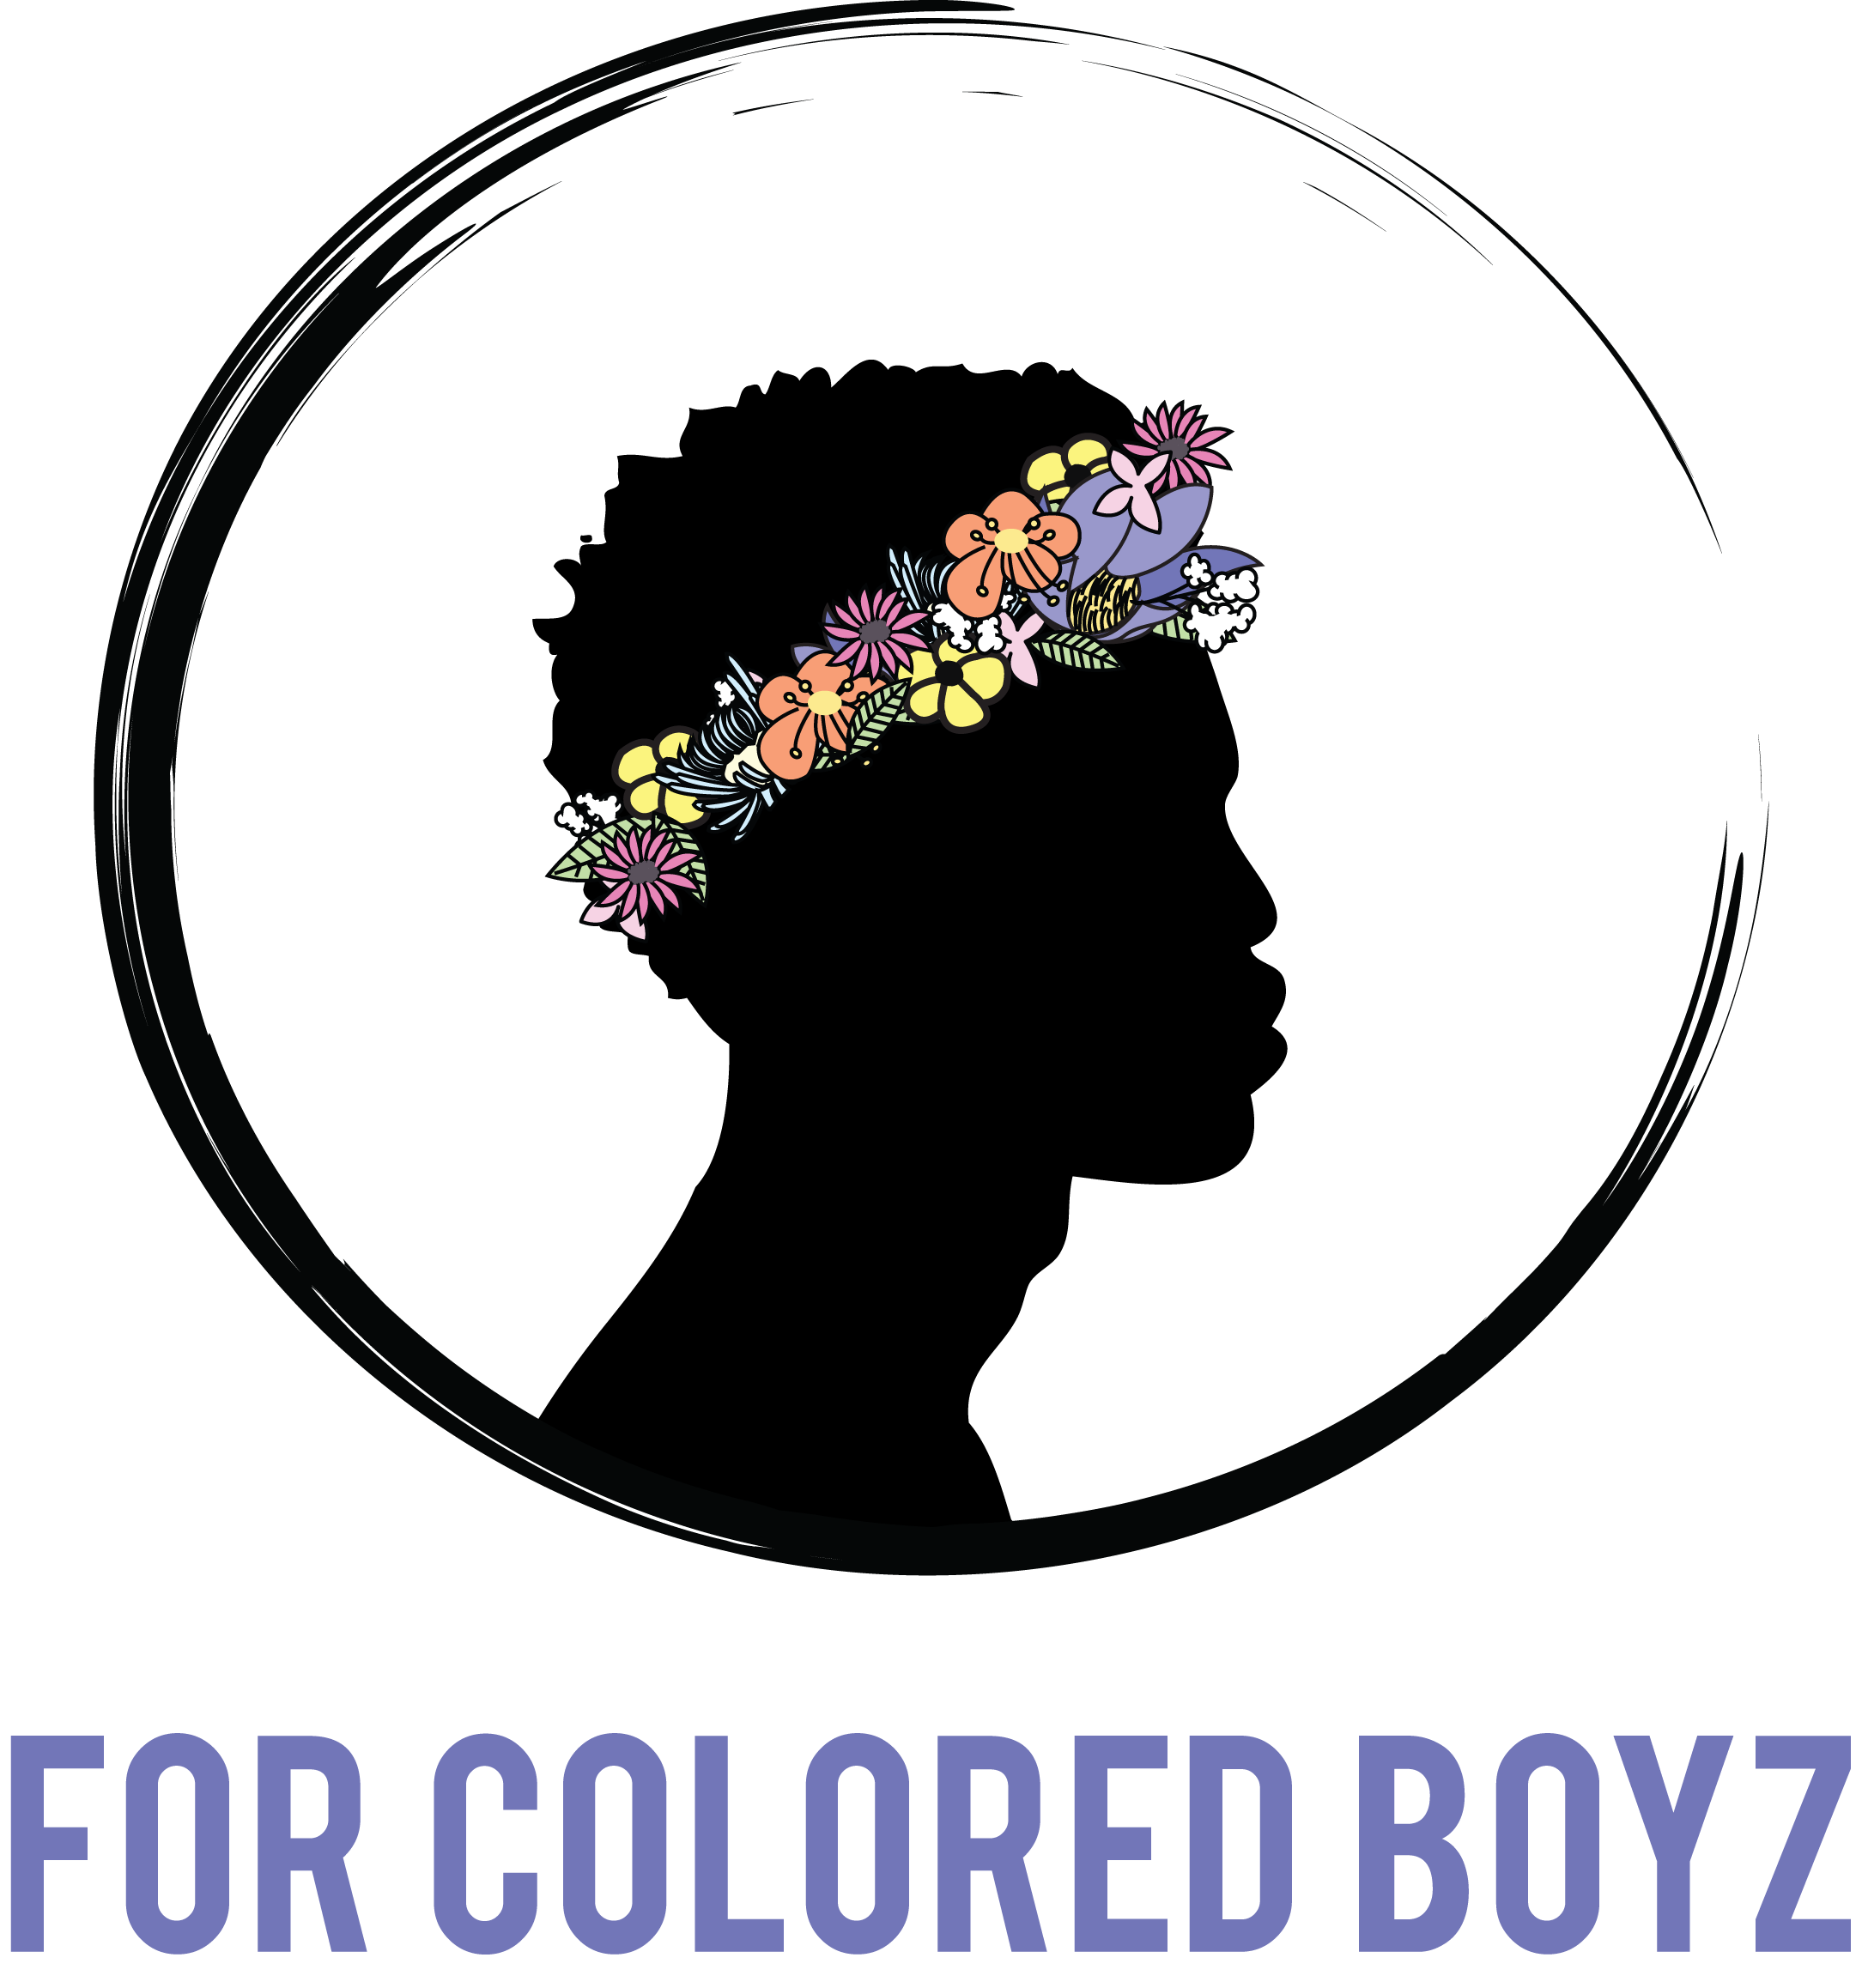 For Colored Boyz